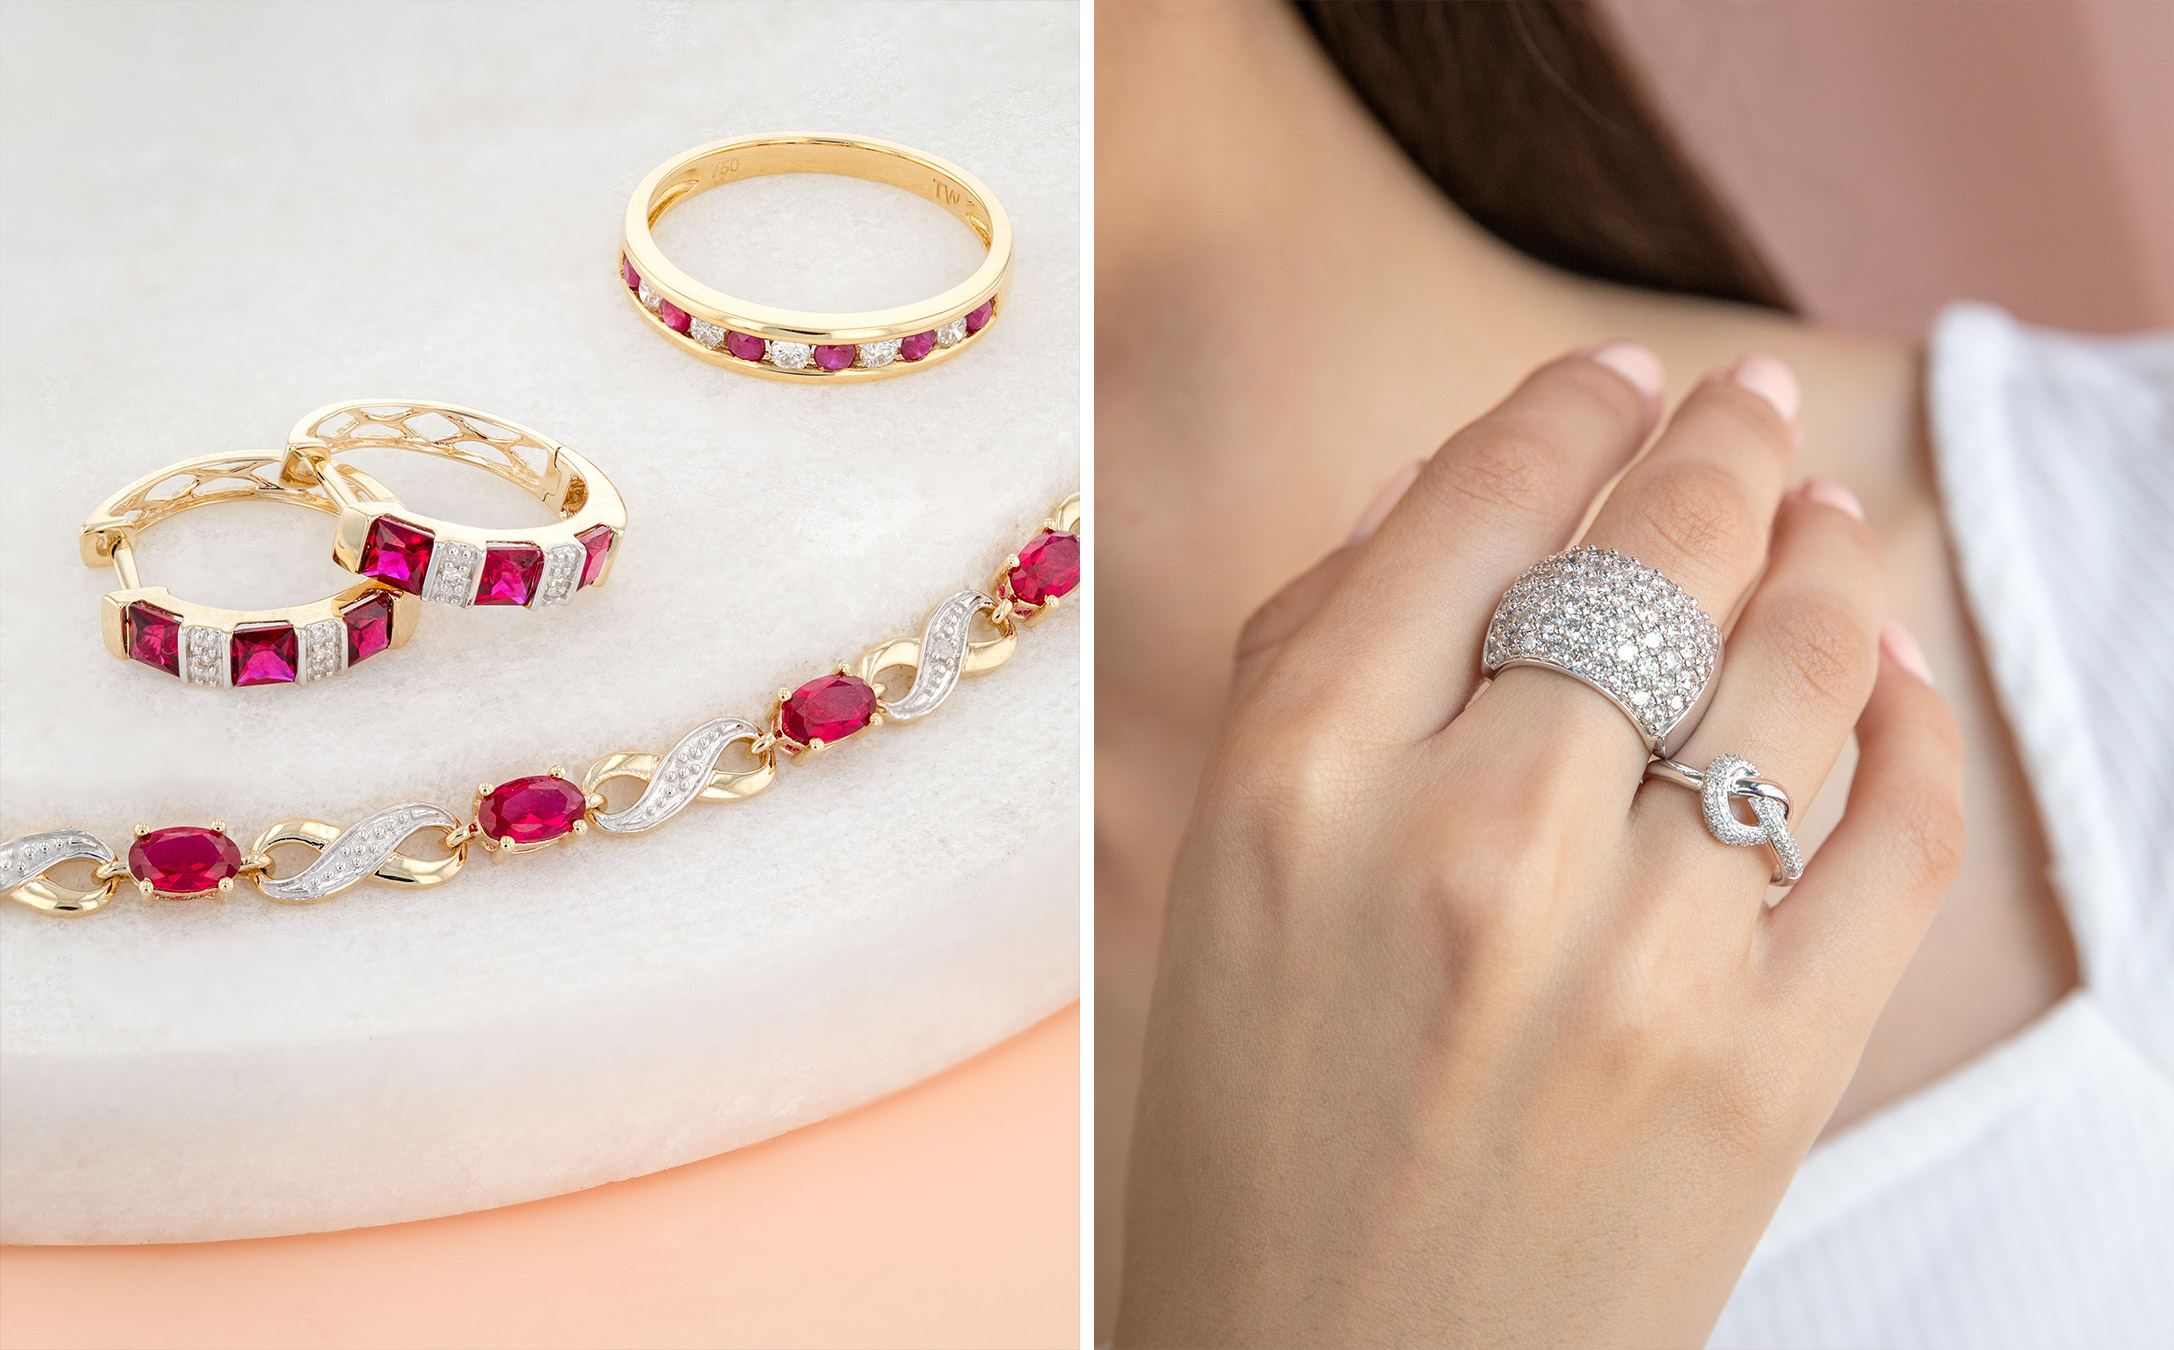 how to wear multiple diamond rings: wear different sizes